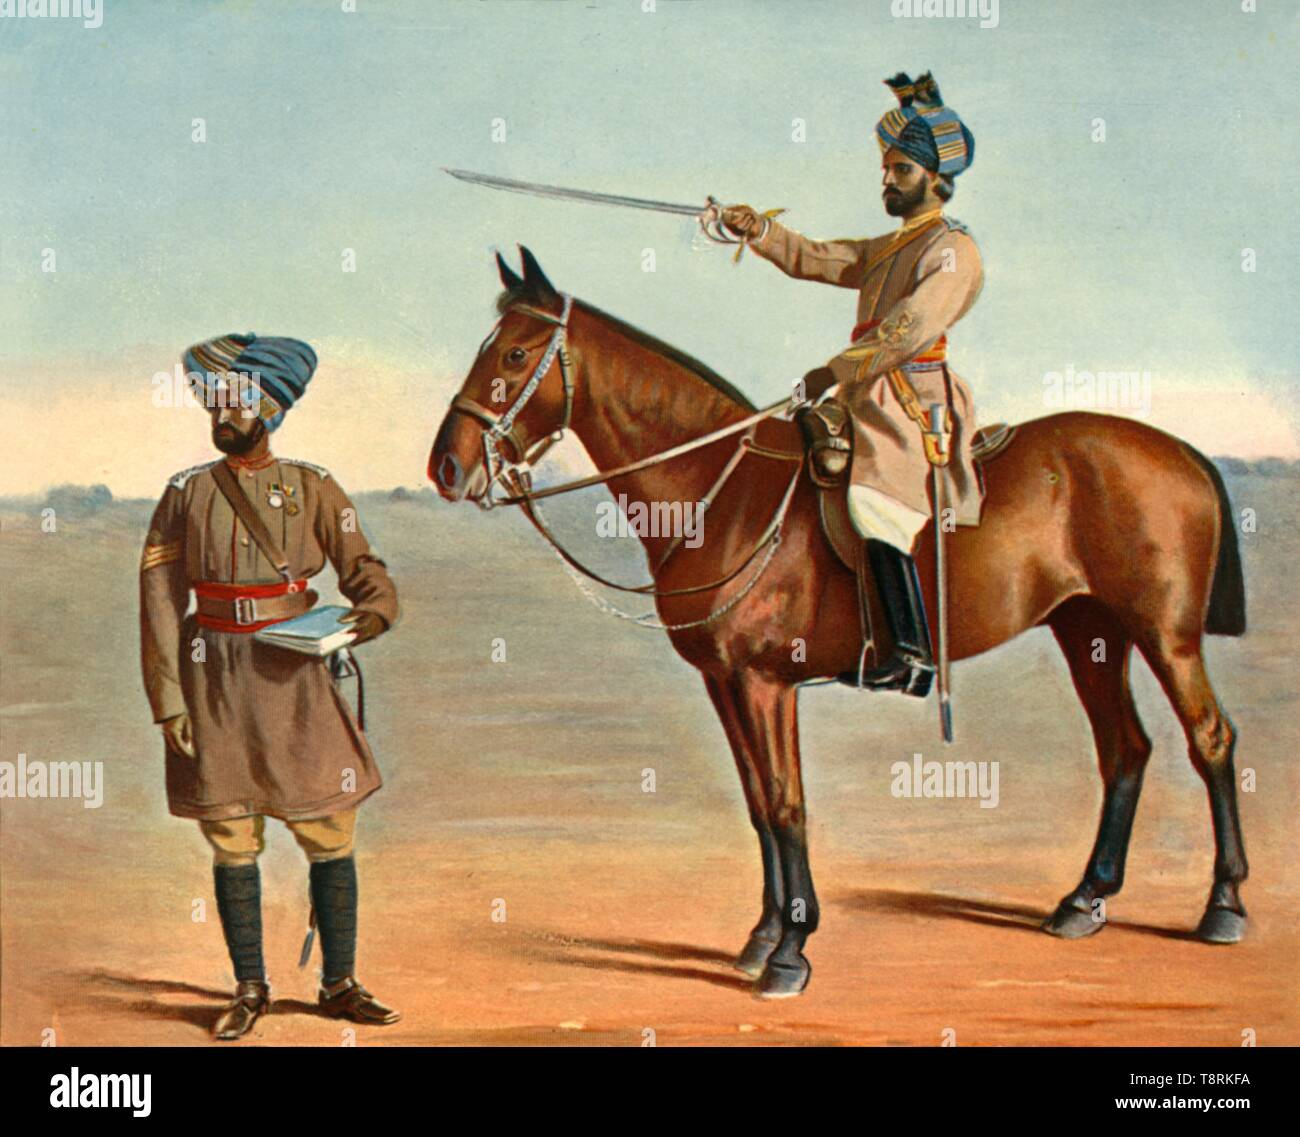 'The Central India Horse', 1901. Creator: F Bremner. - Stock Image